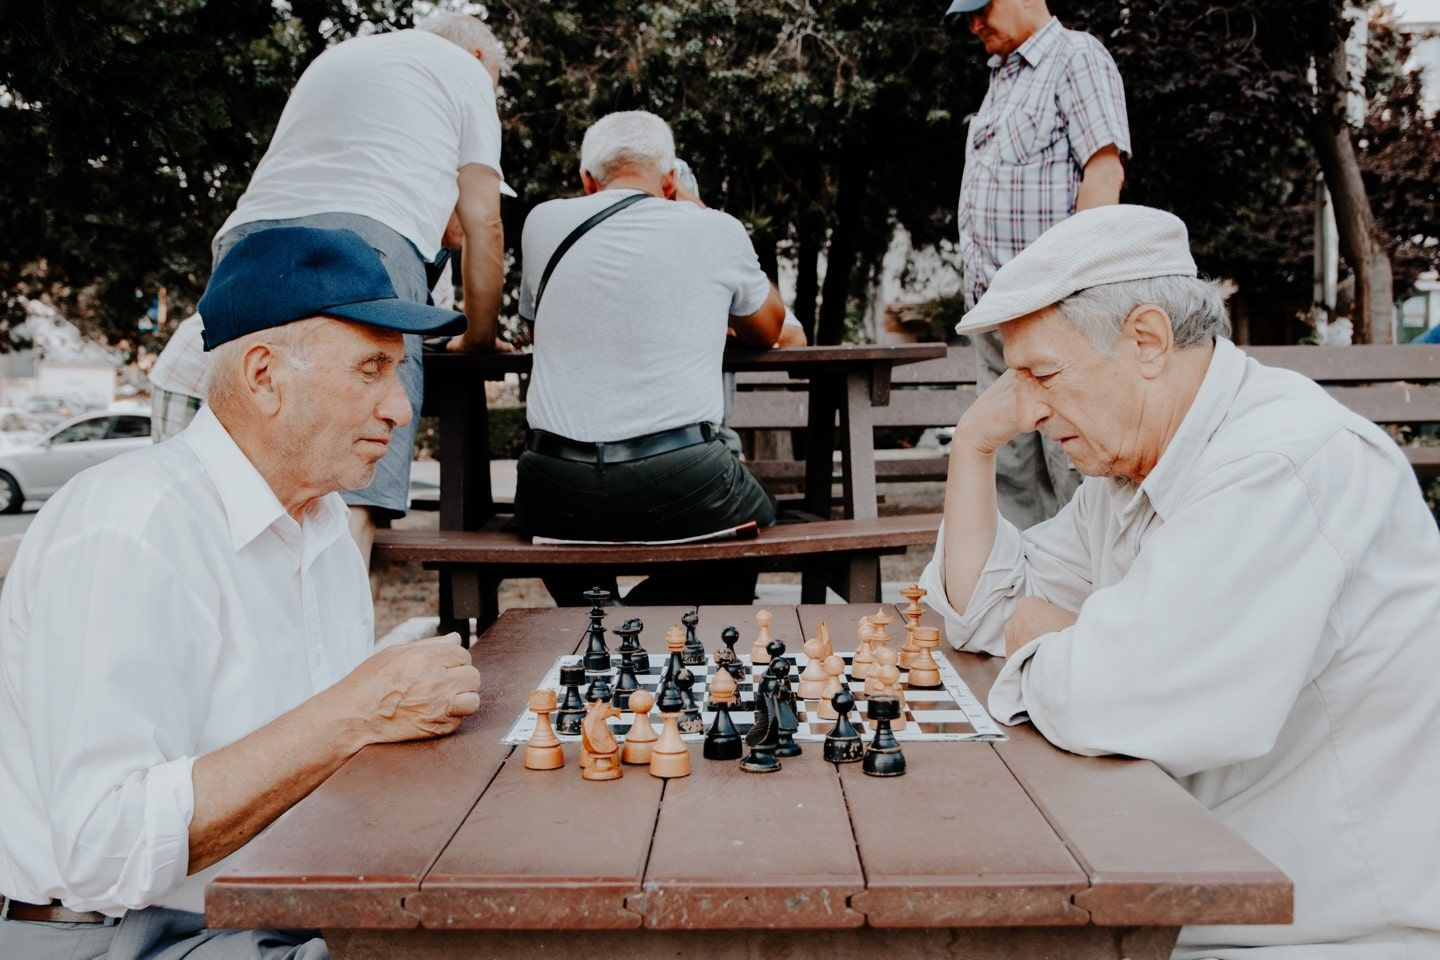 Two old men playing chess